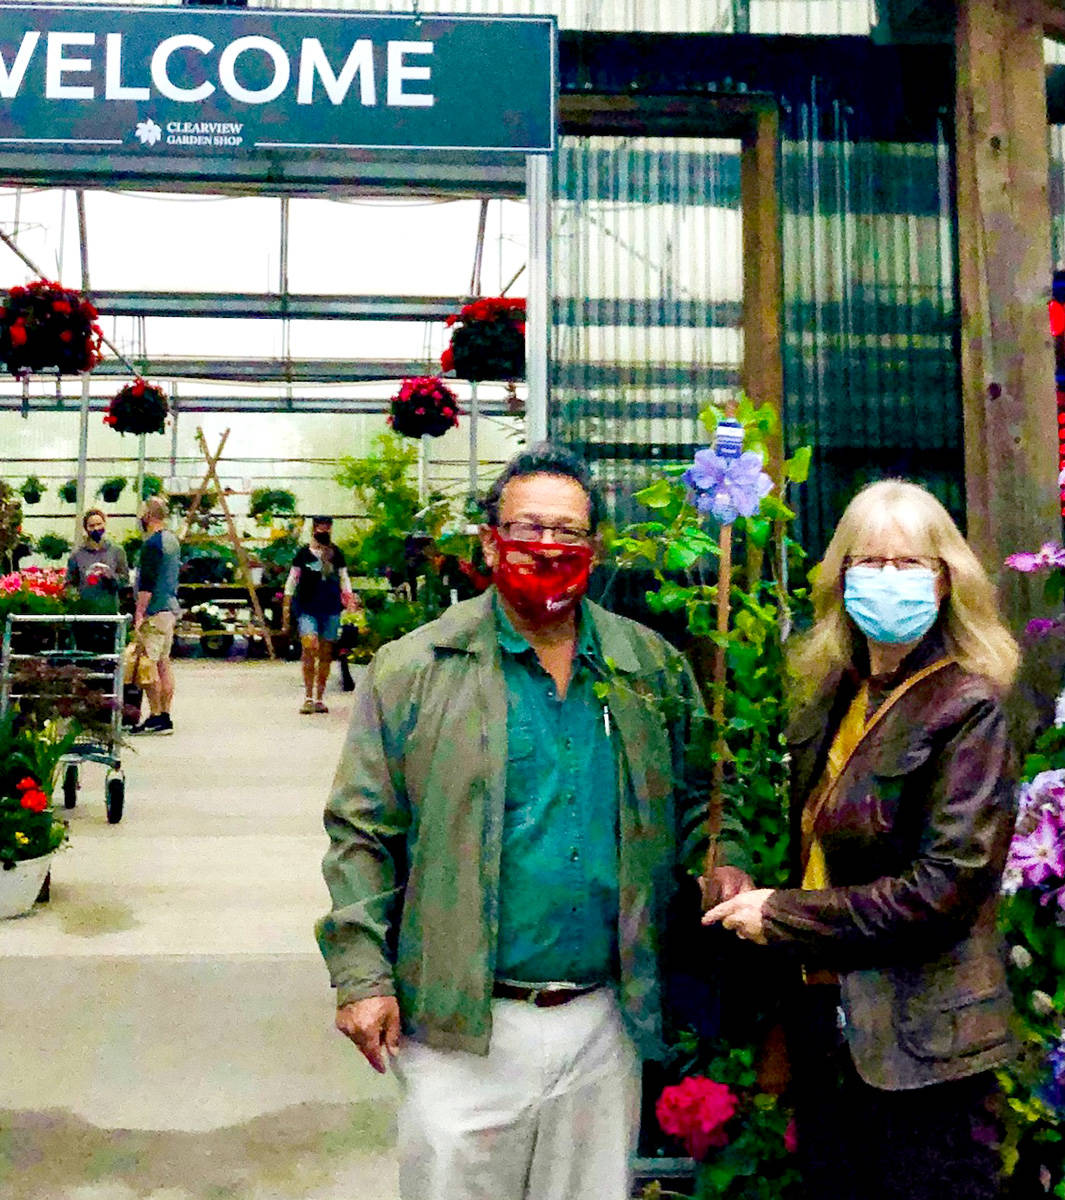 Karen Long did some plant shopping at Clearview Garden Centre. (Special to The Star)